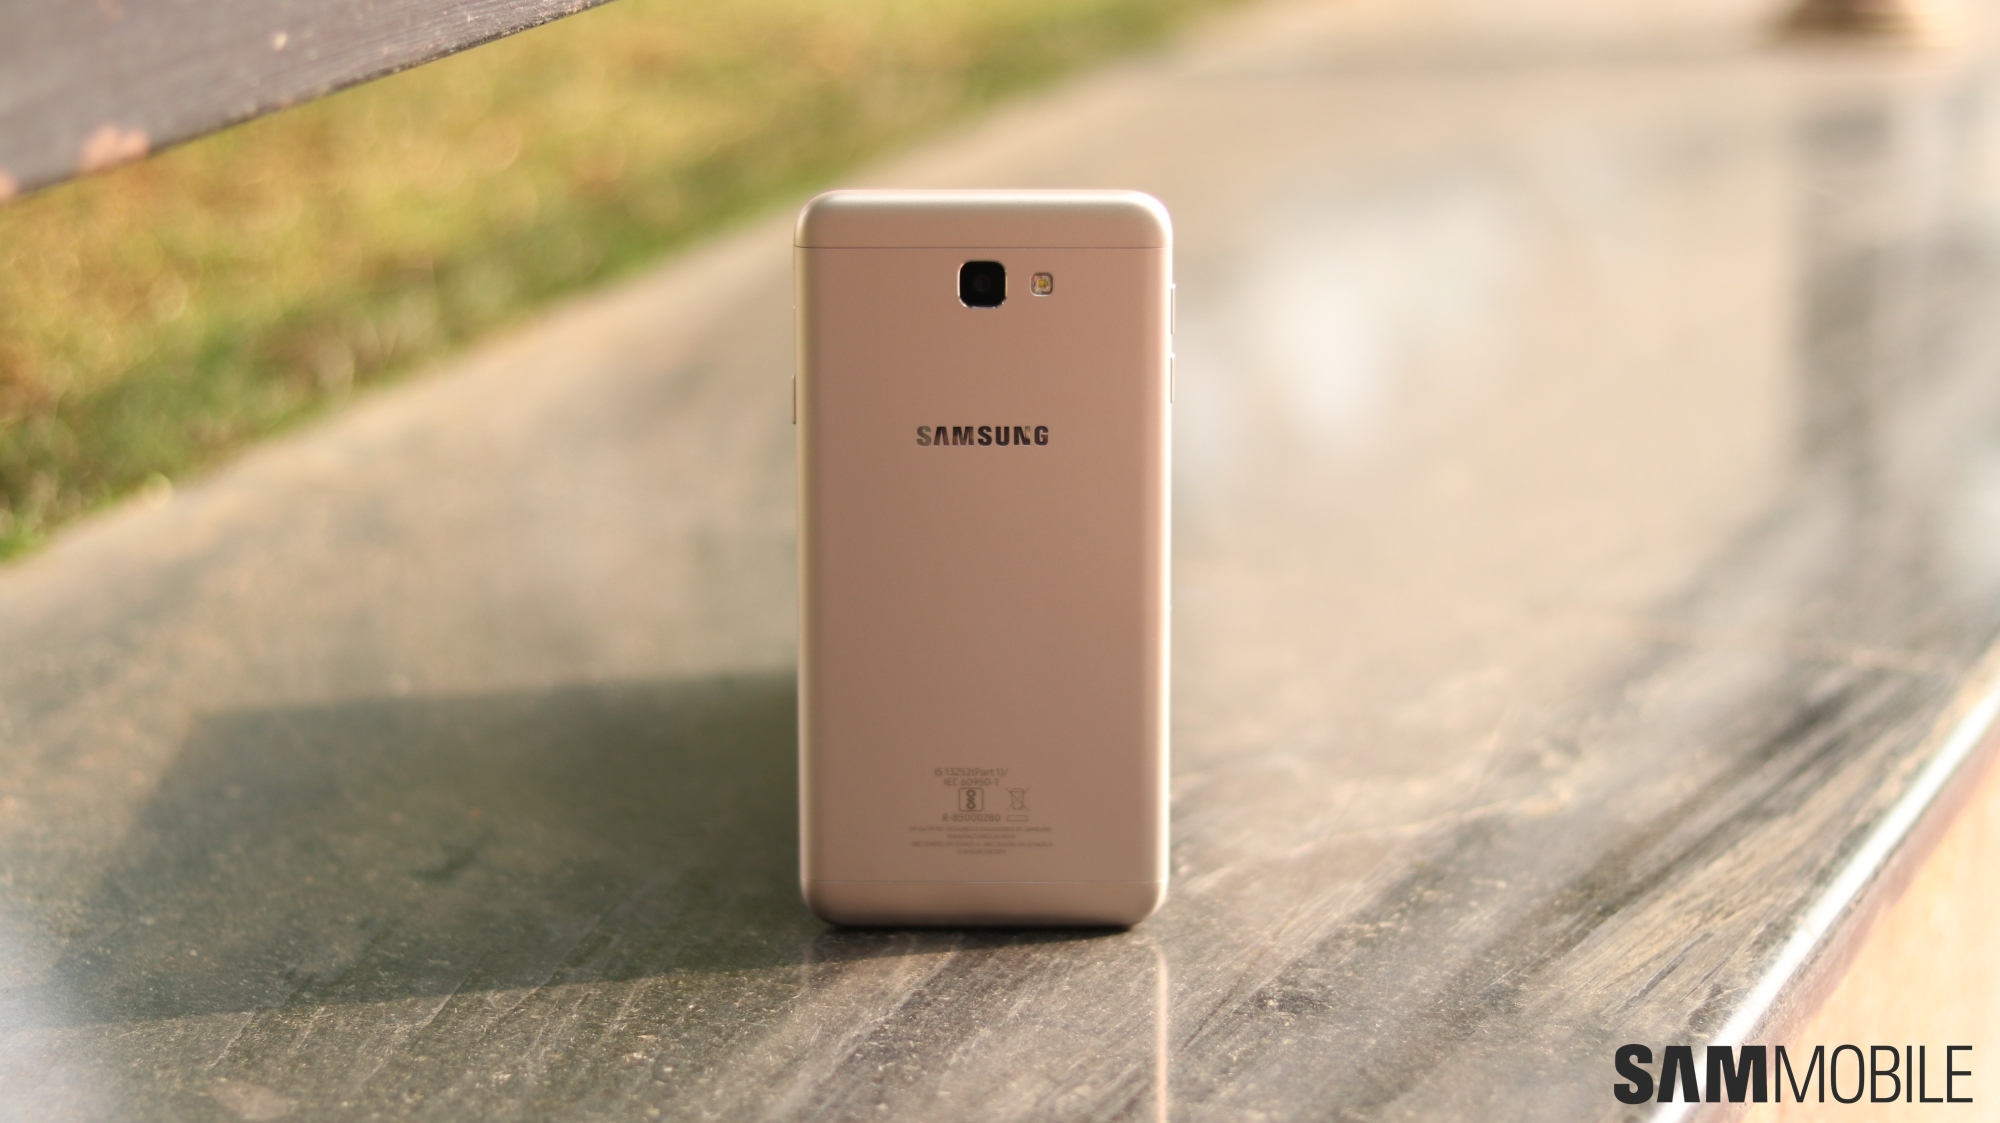 Samsung Galaxy On7 Prime review: Good effort, but not enough